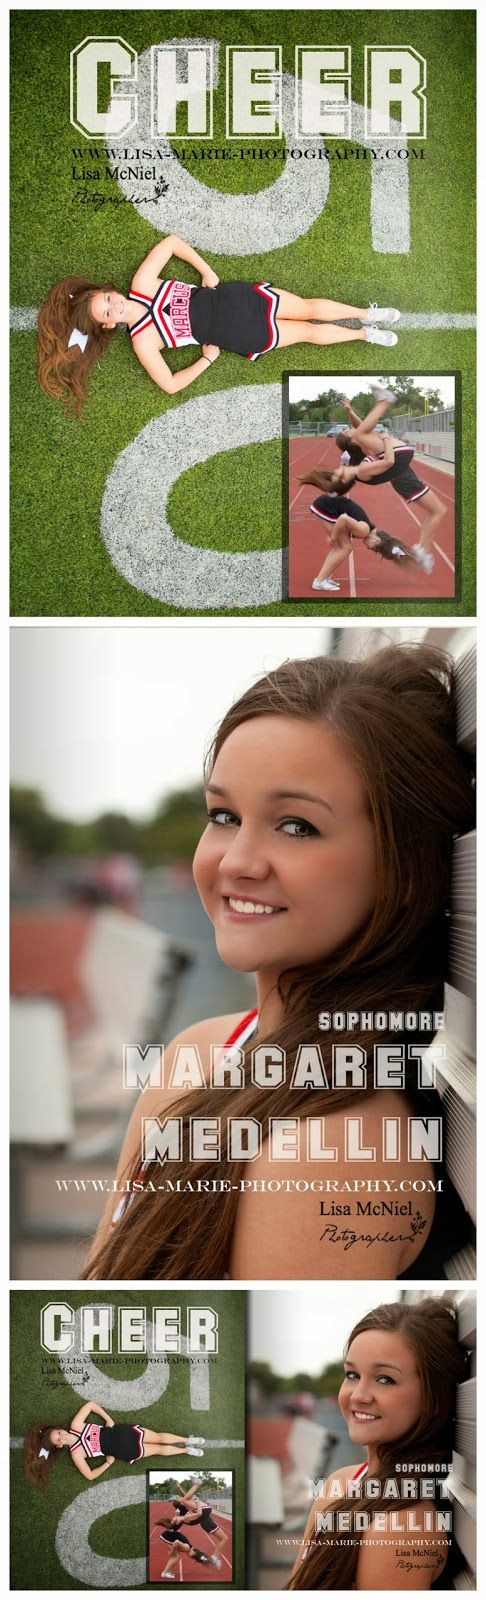 Cheerleading Cheer click the pic to see 20 more senior picture ideas, #Portraits #Seniorpictures #cheer #cheerleading www.Lisa-Marie-Photography.com